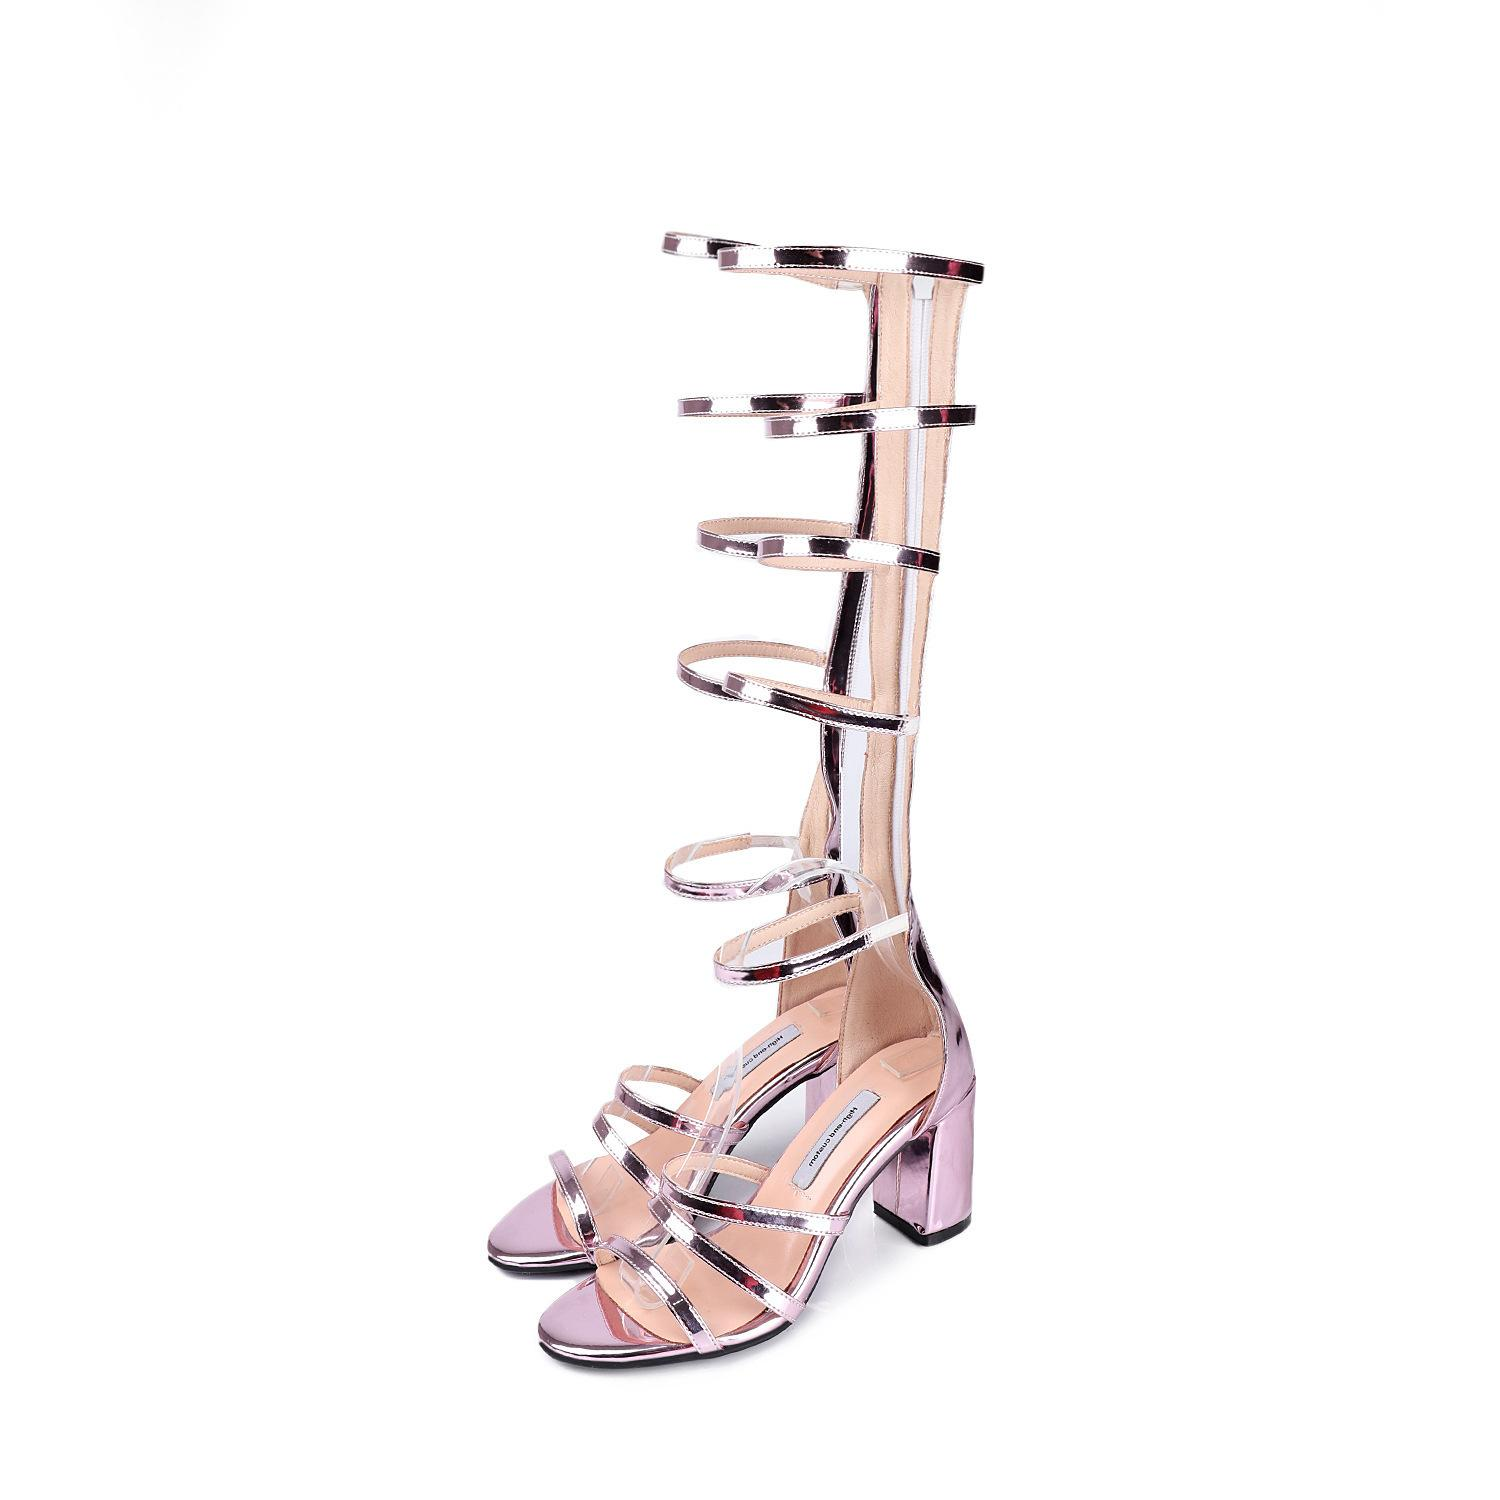 Foreign Wish Chaussures Évider Cool Mode Sexy Femme Pattern Aide 2019 Sandales Summer Will sBQdhCrtx